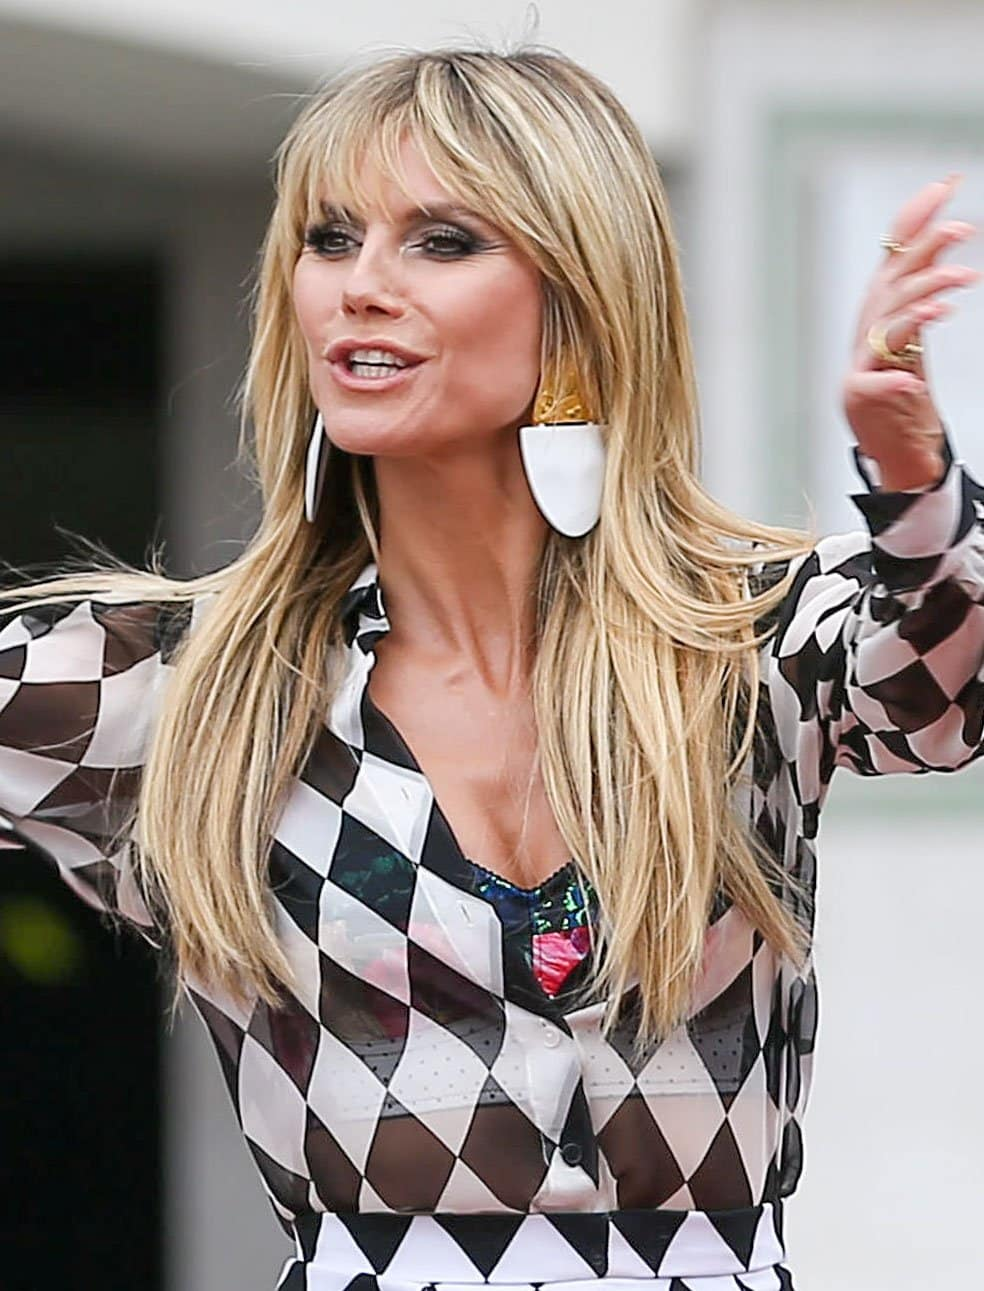 Heidi Klum accessorizes with oversized earrings and glams up with smokey eyes and nude lipstick